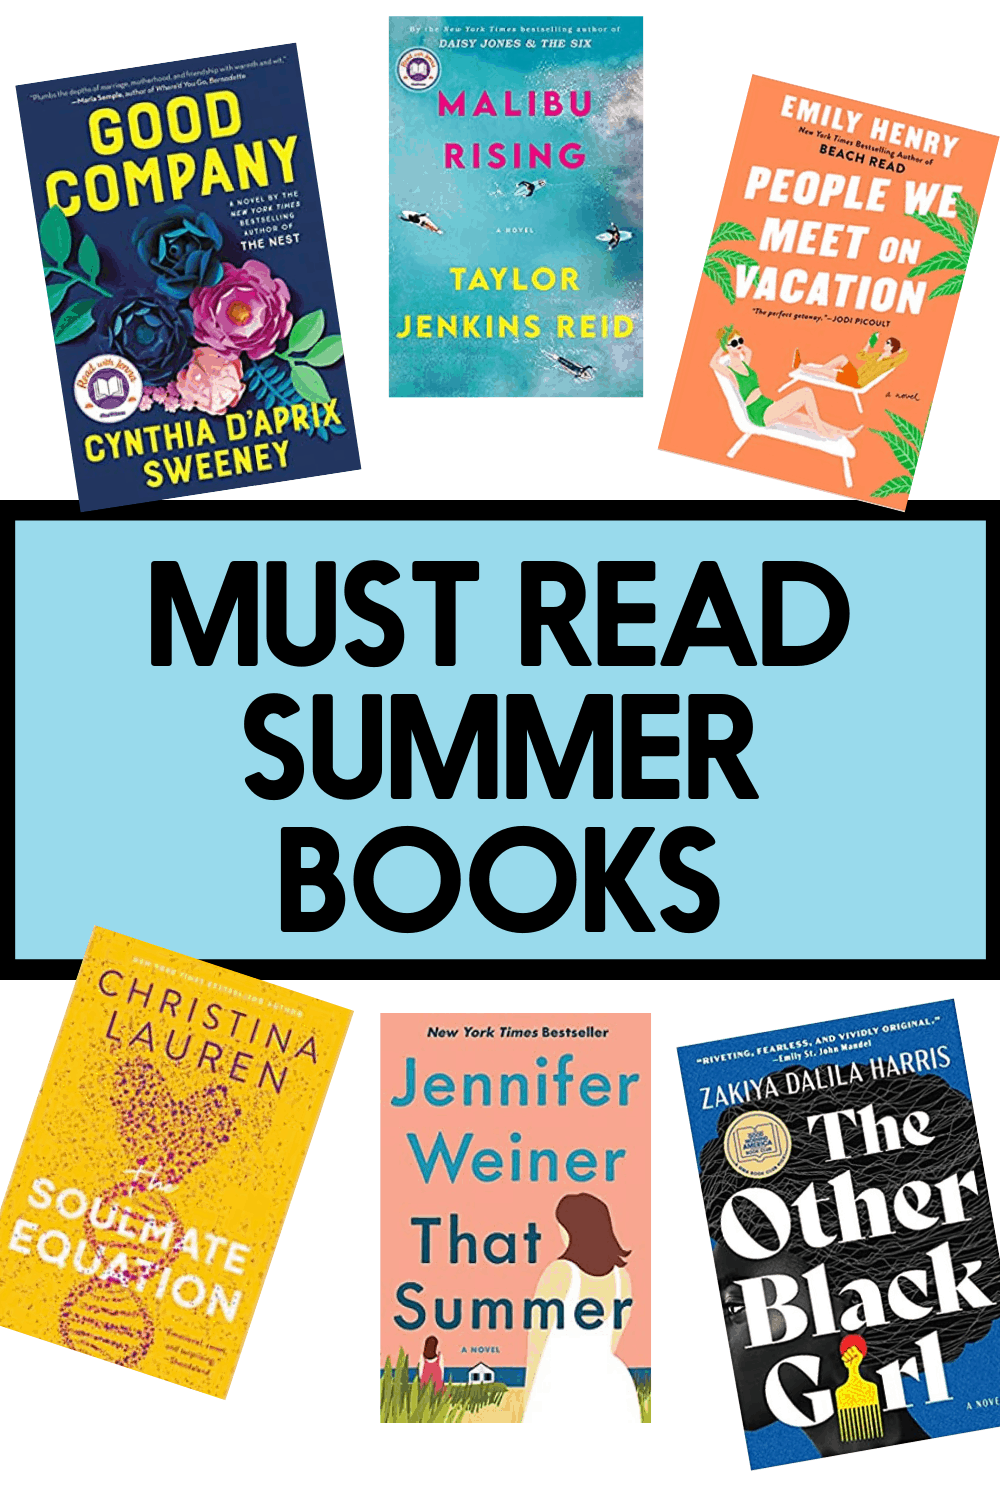 Books to read this summer.